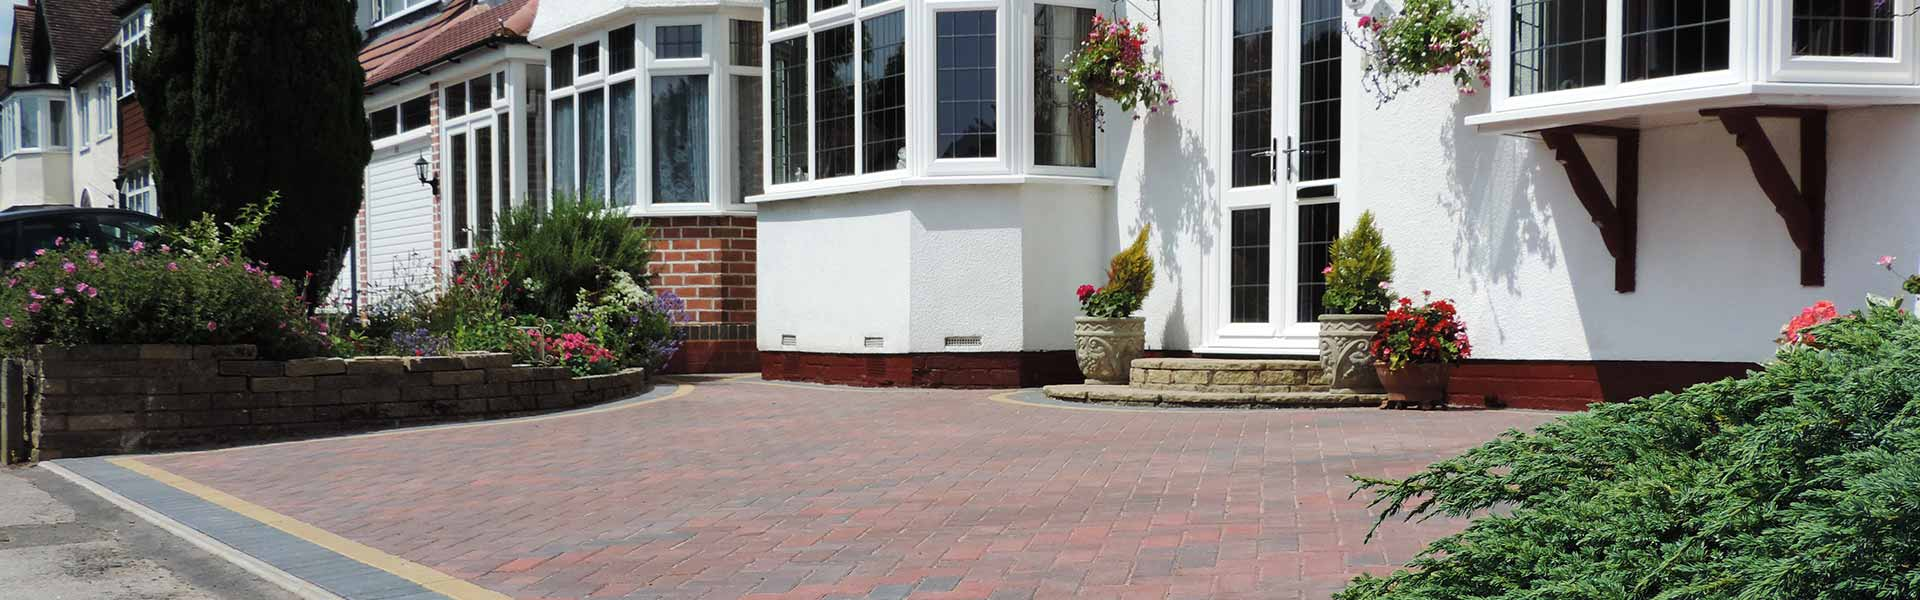 Block Paving Installers Coventry